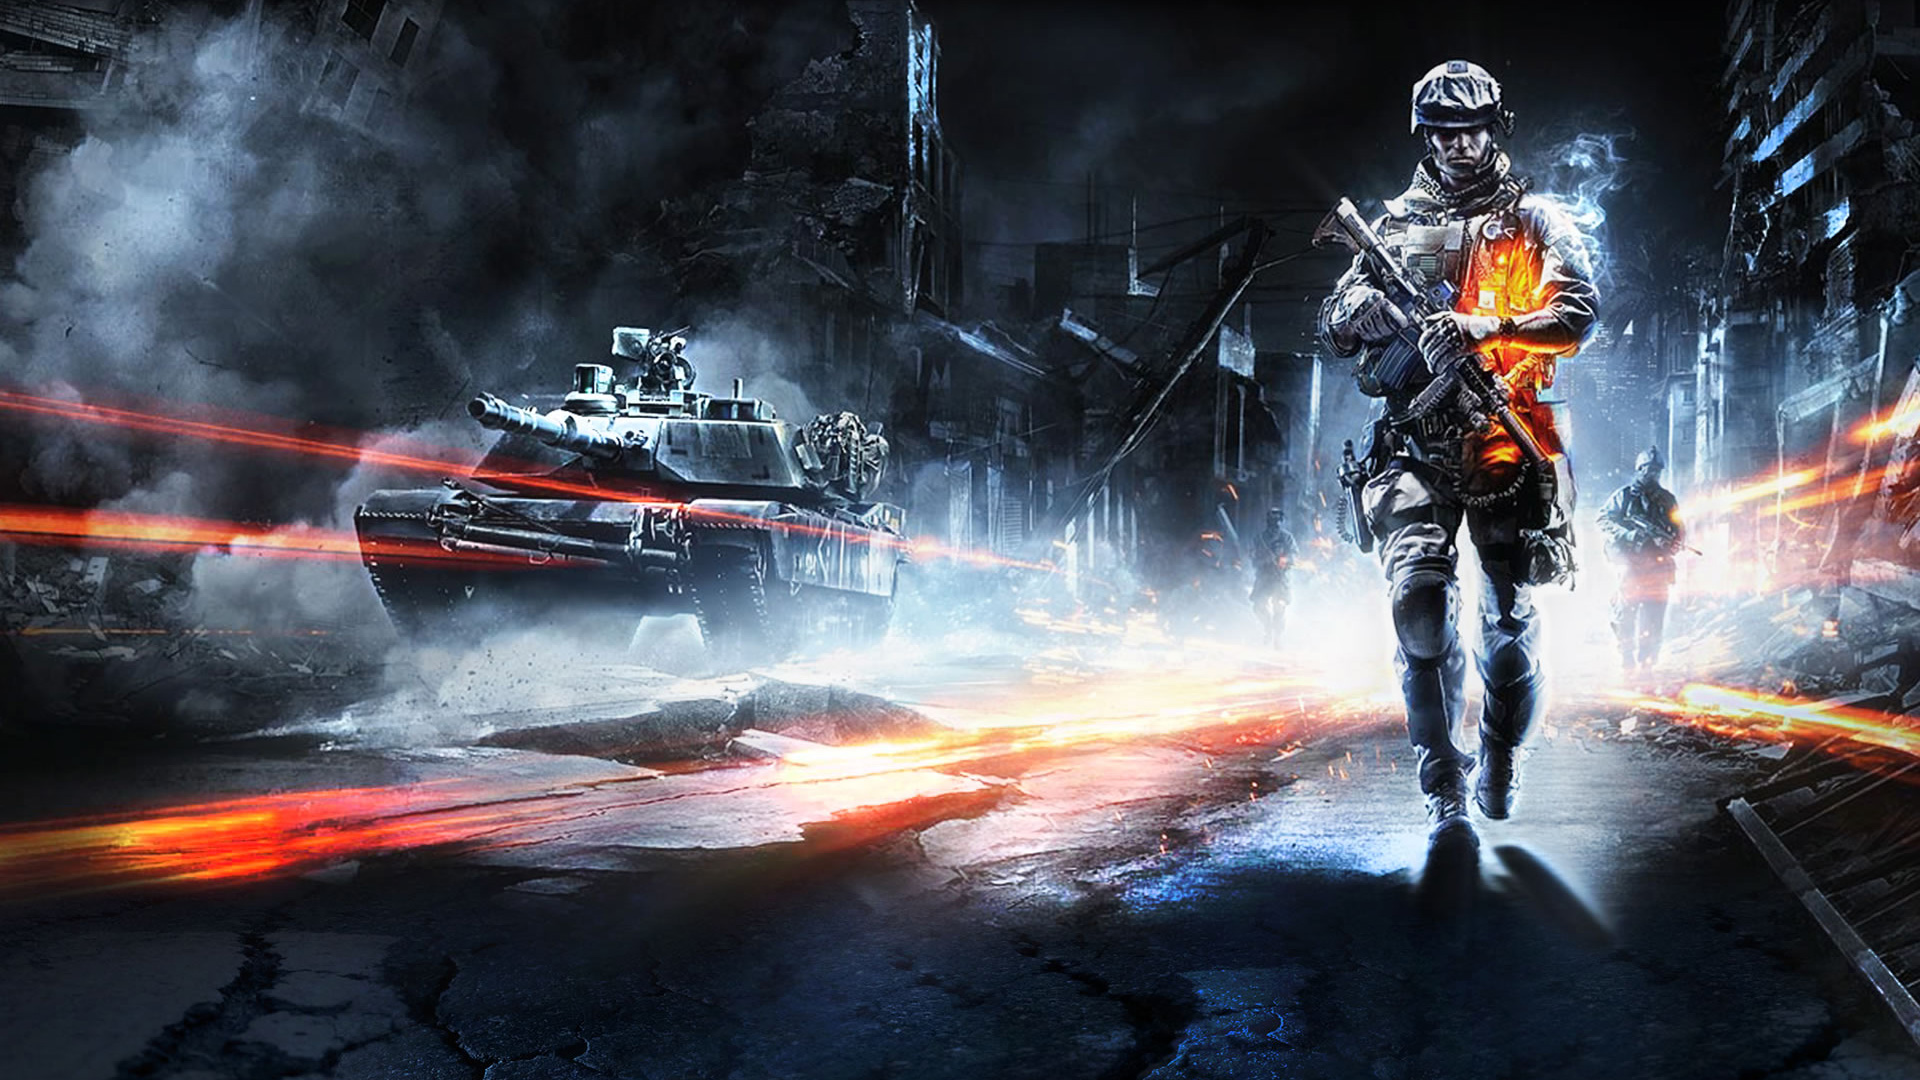 Battlefield 3 Wallpaper in 1920x1080